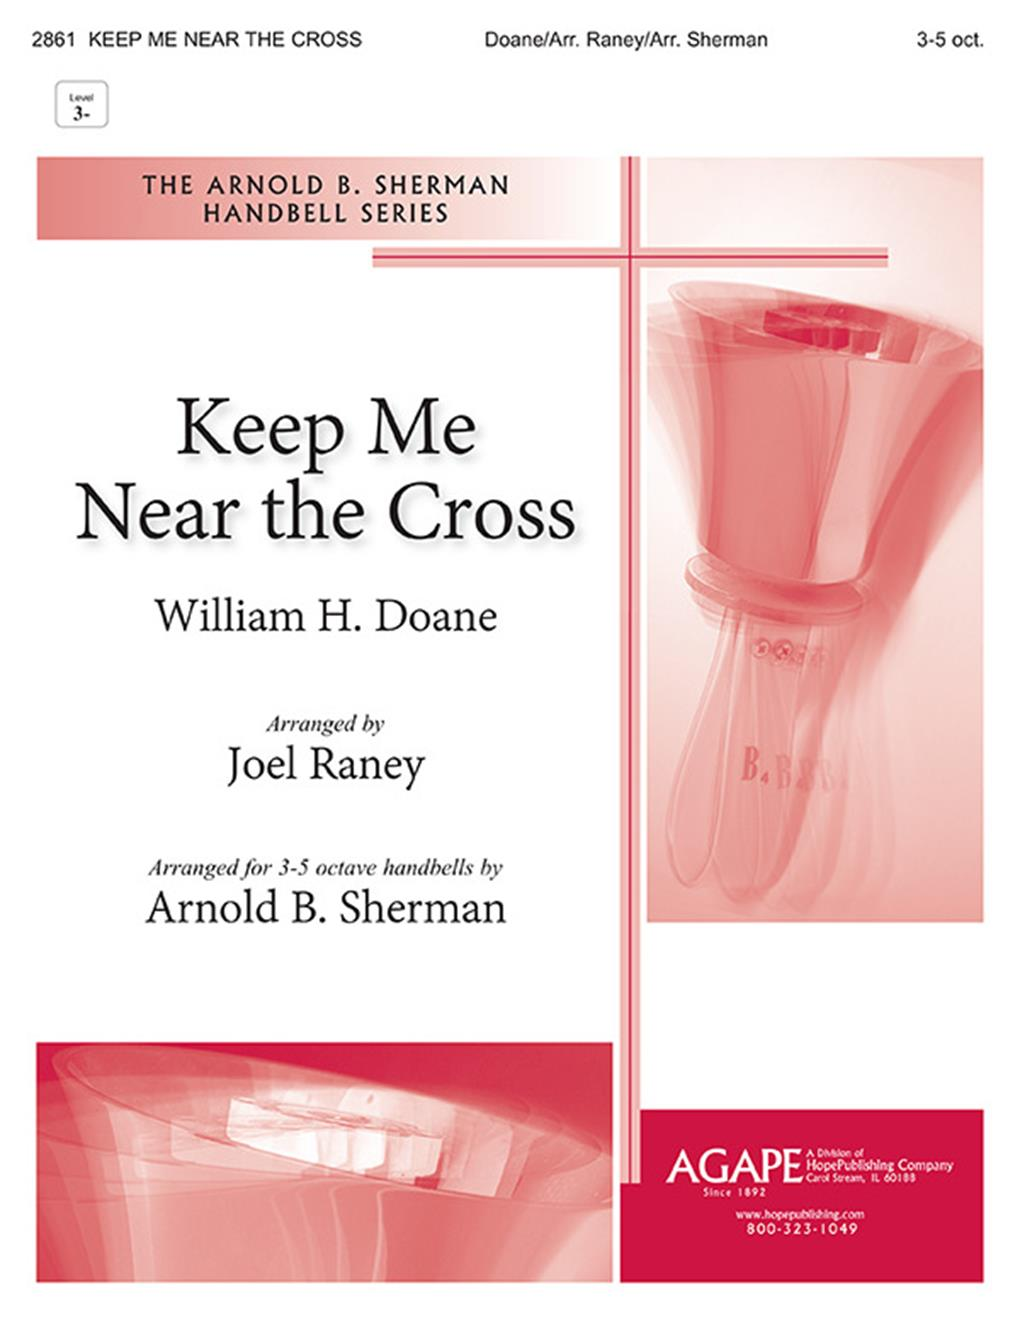 Keep Me Near the Cross - 3-5 oct. Cover Image